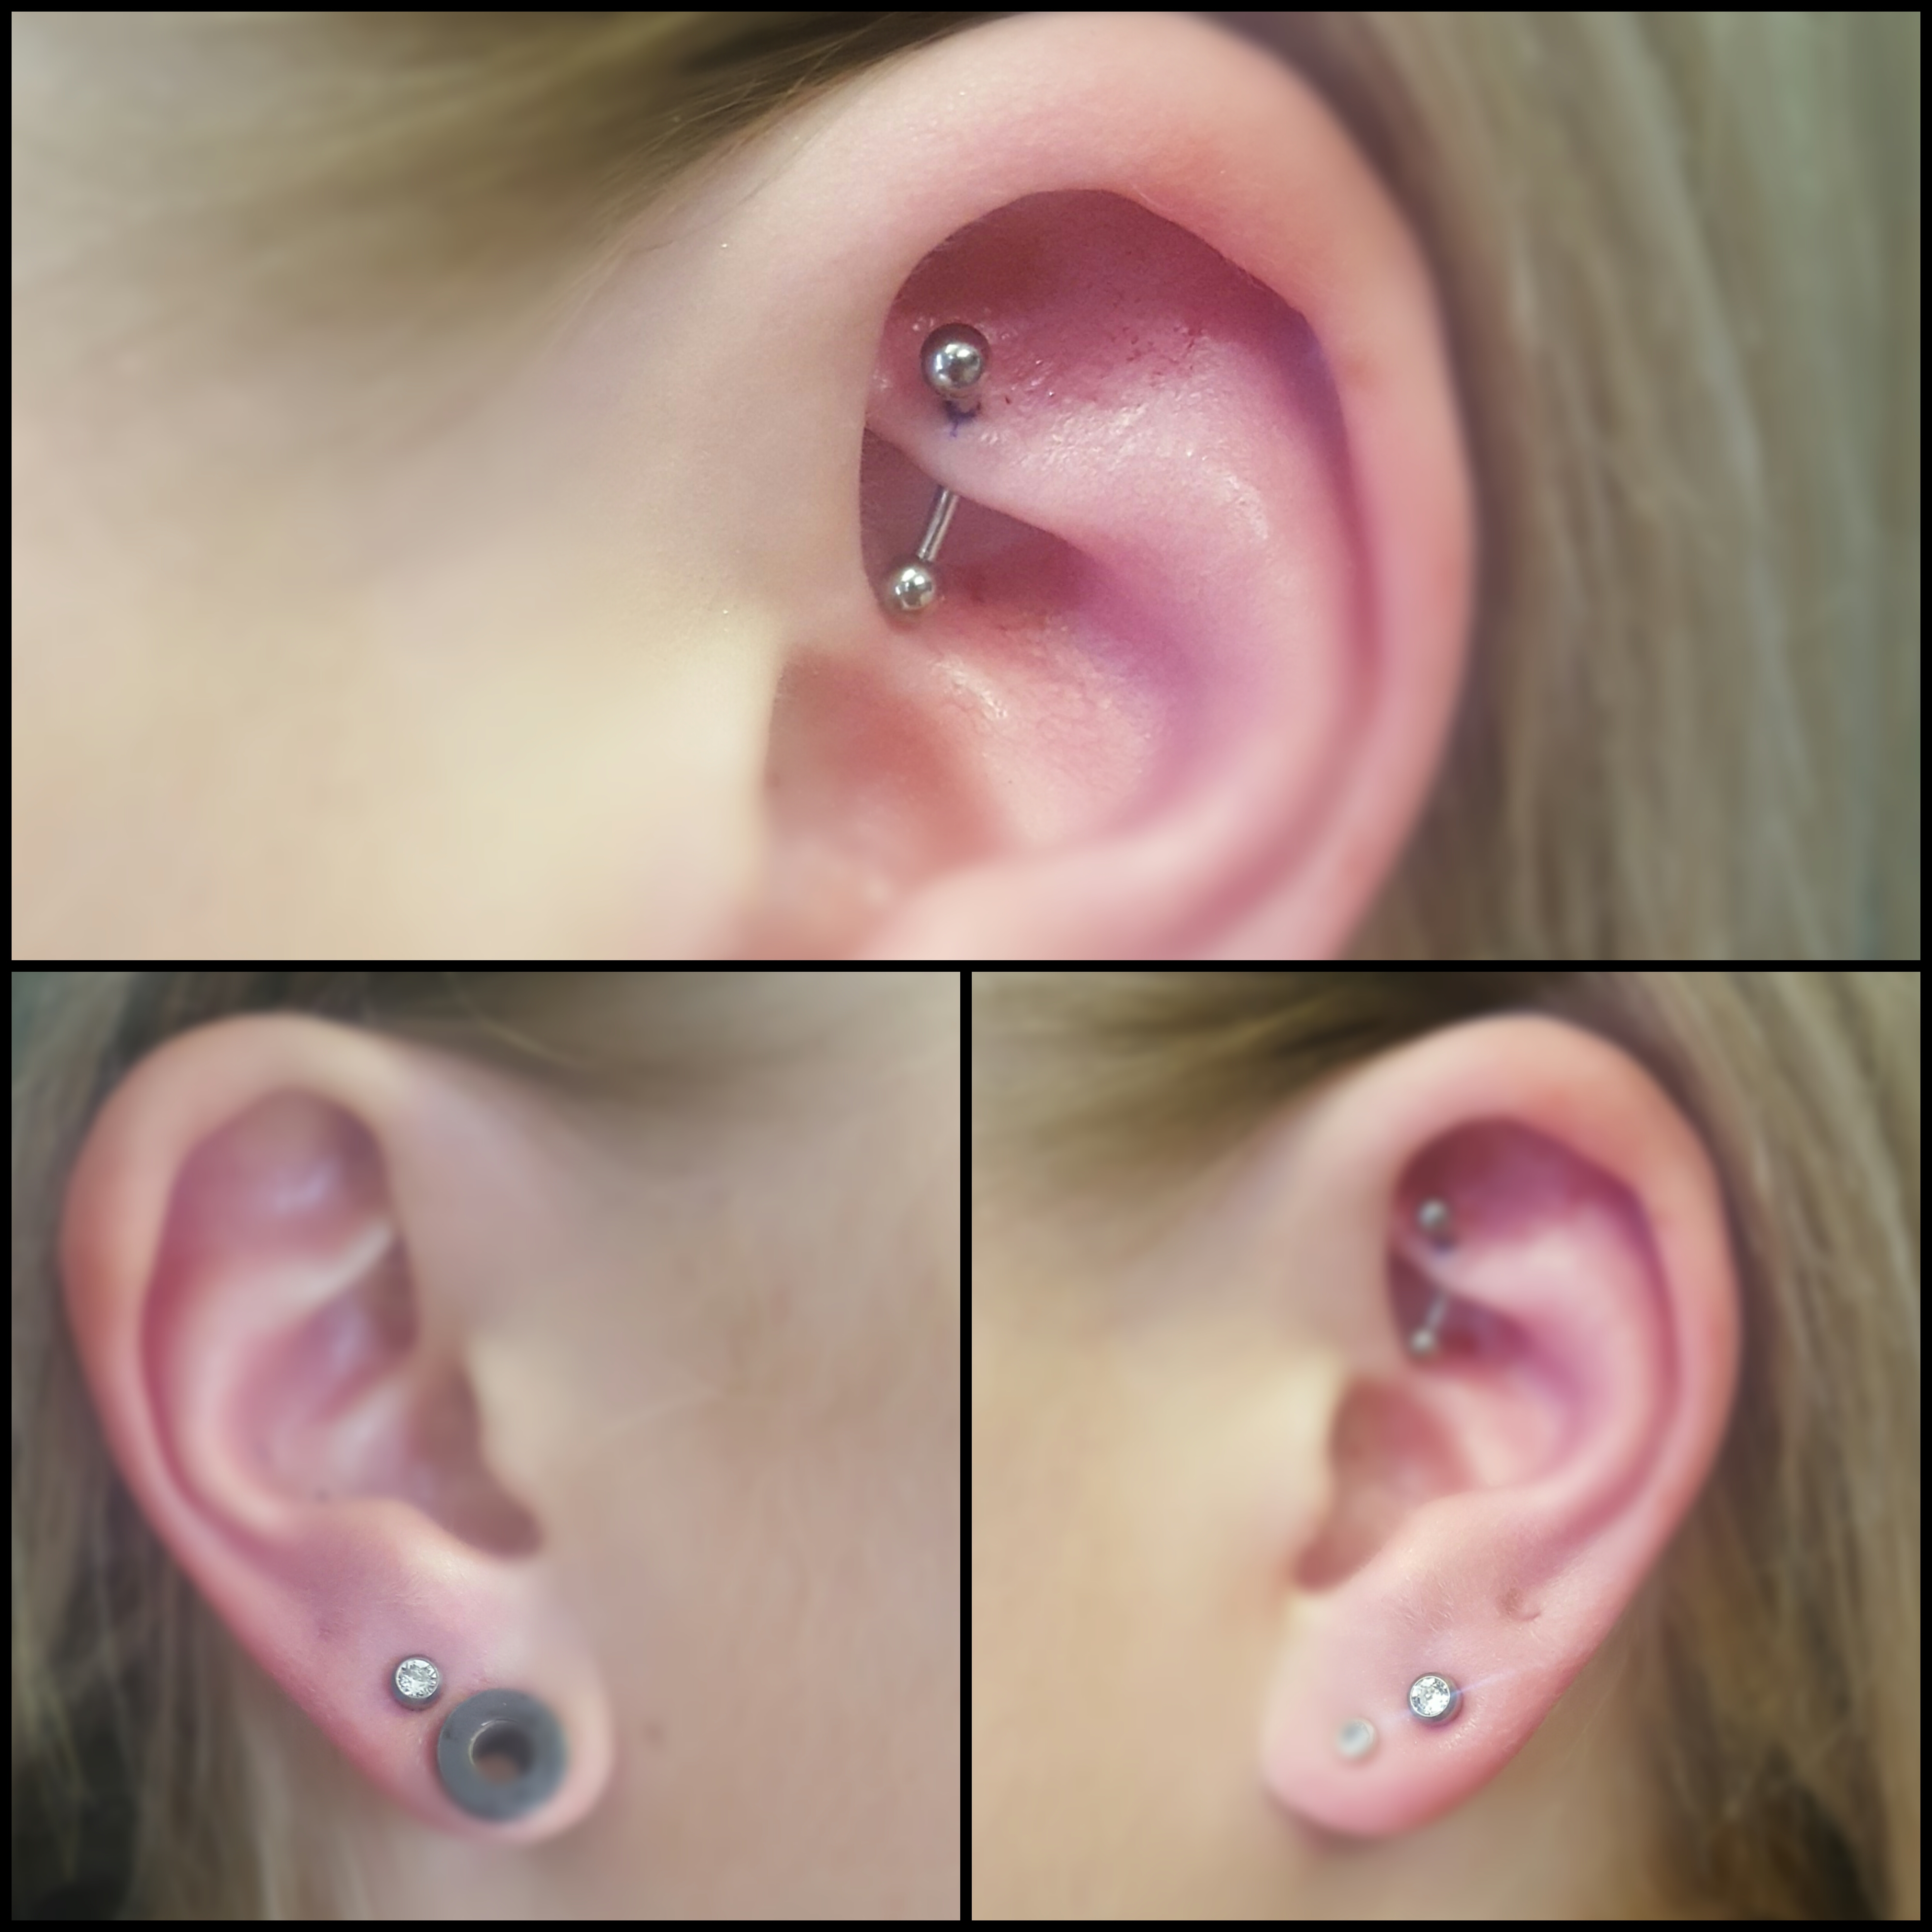 Rook and Upper lobes